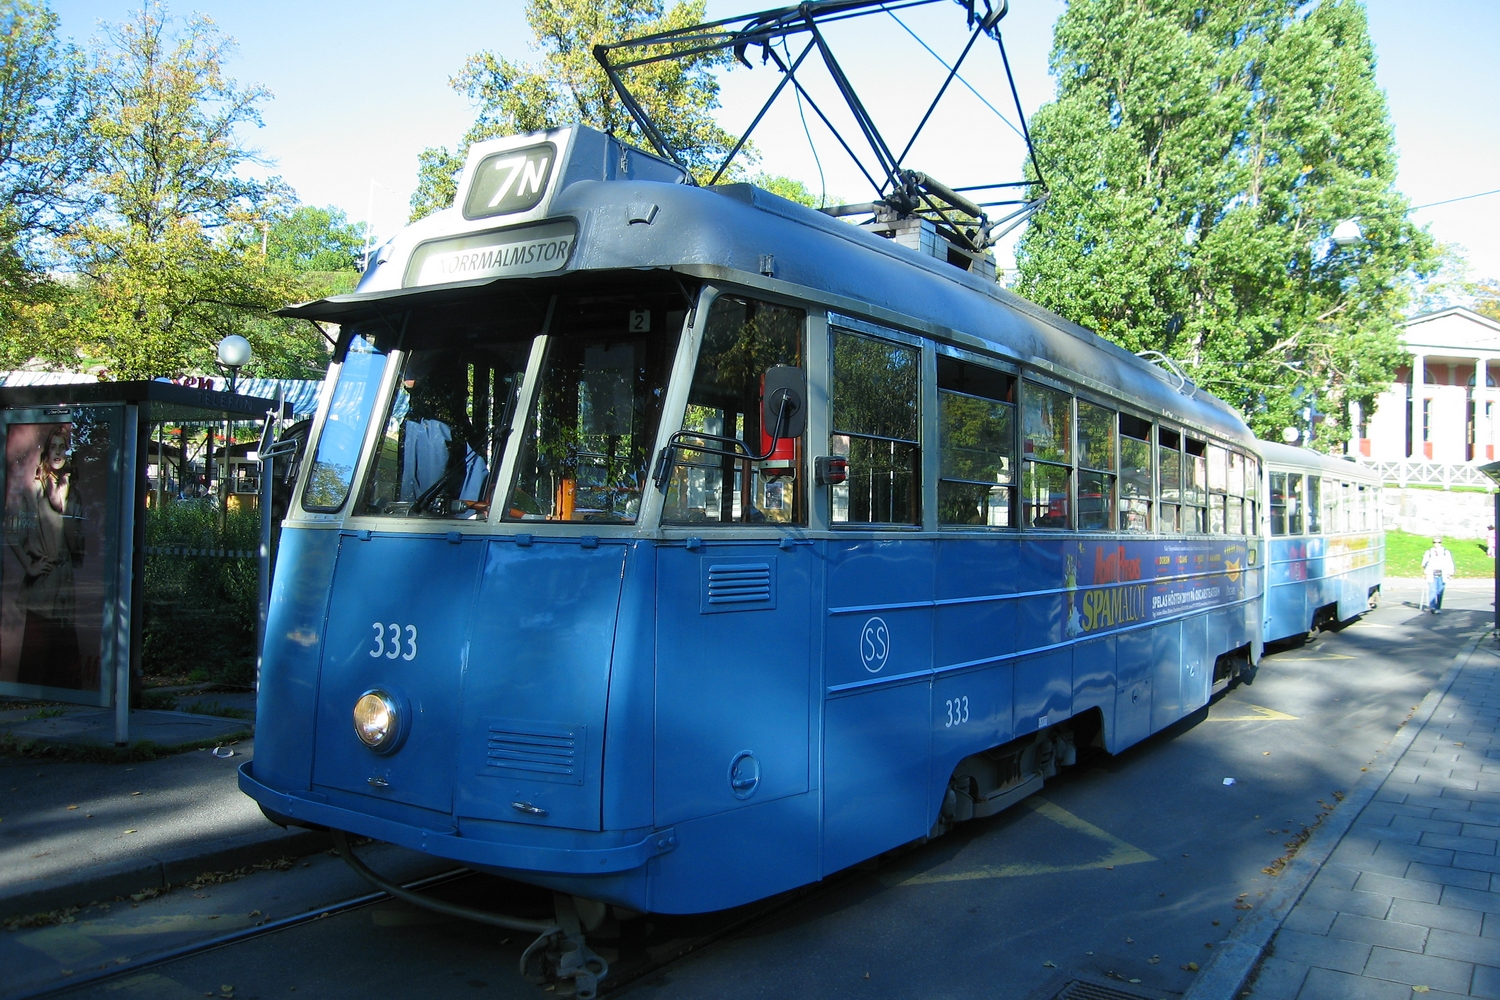 Gothenburg railcar 333 on museum line Djurgårdslinjen 7N at the final destination Skansen (2011)